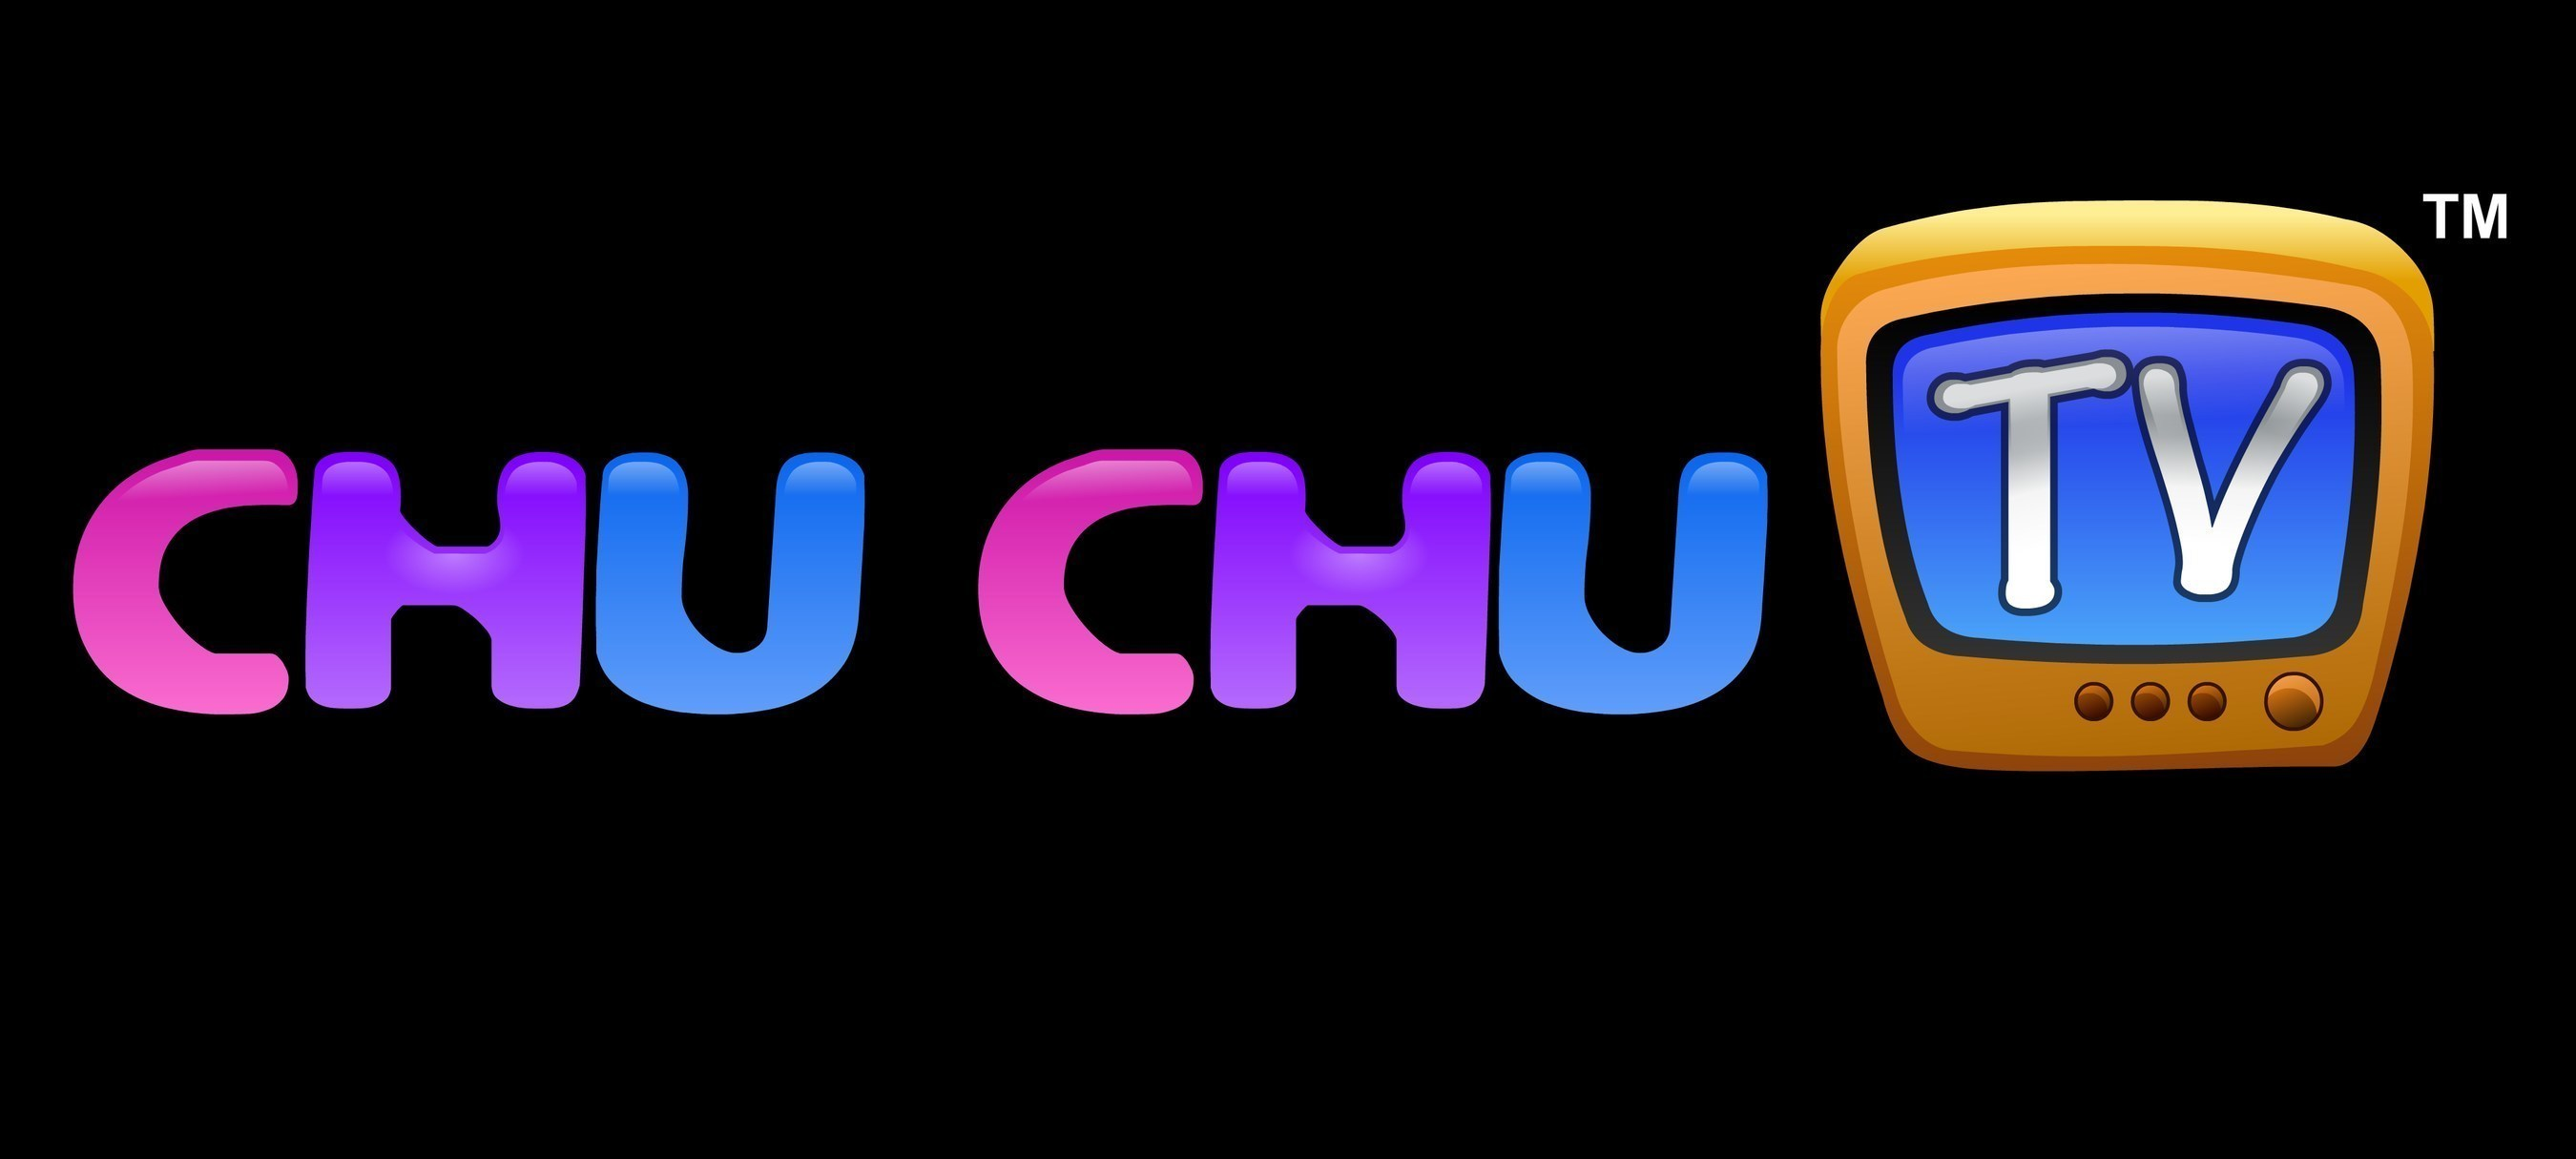 Children's YouTube Channel ChuChu TV Announces Partnership With Spreadshirt.com, Closes in on 2 Billion Views, 2 Million Subscribers